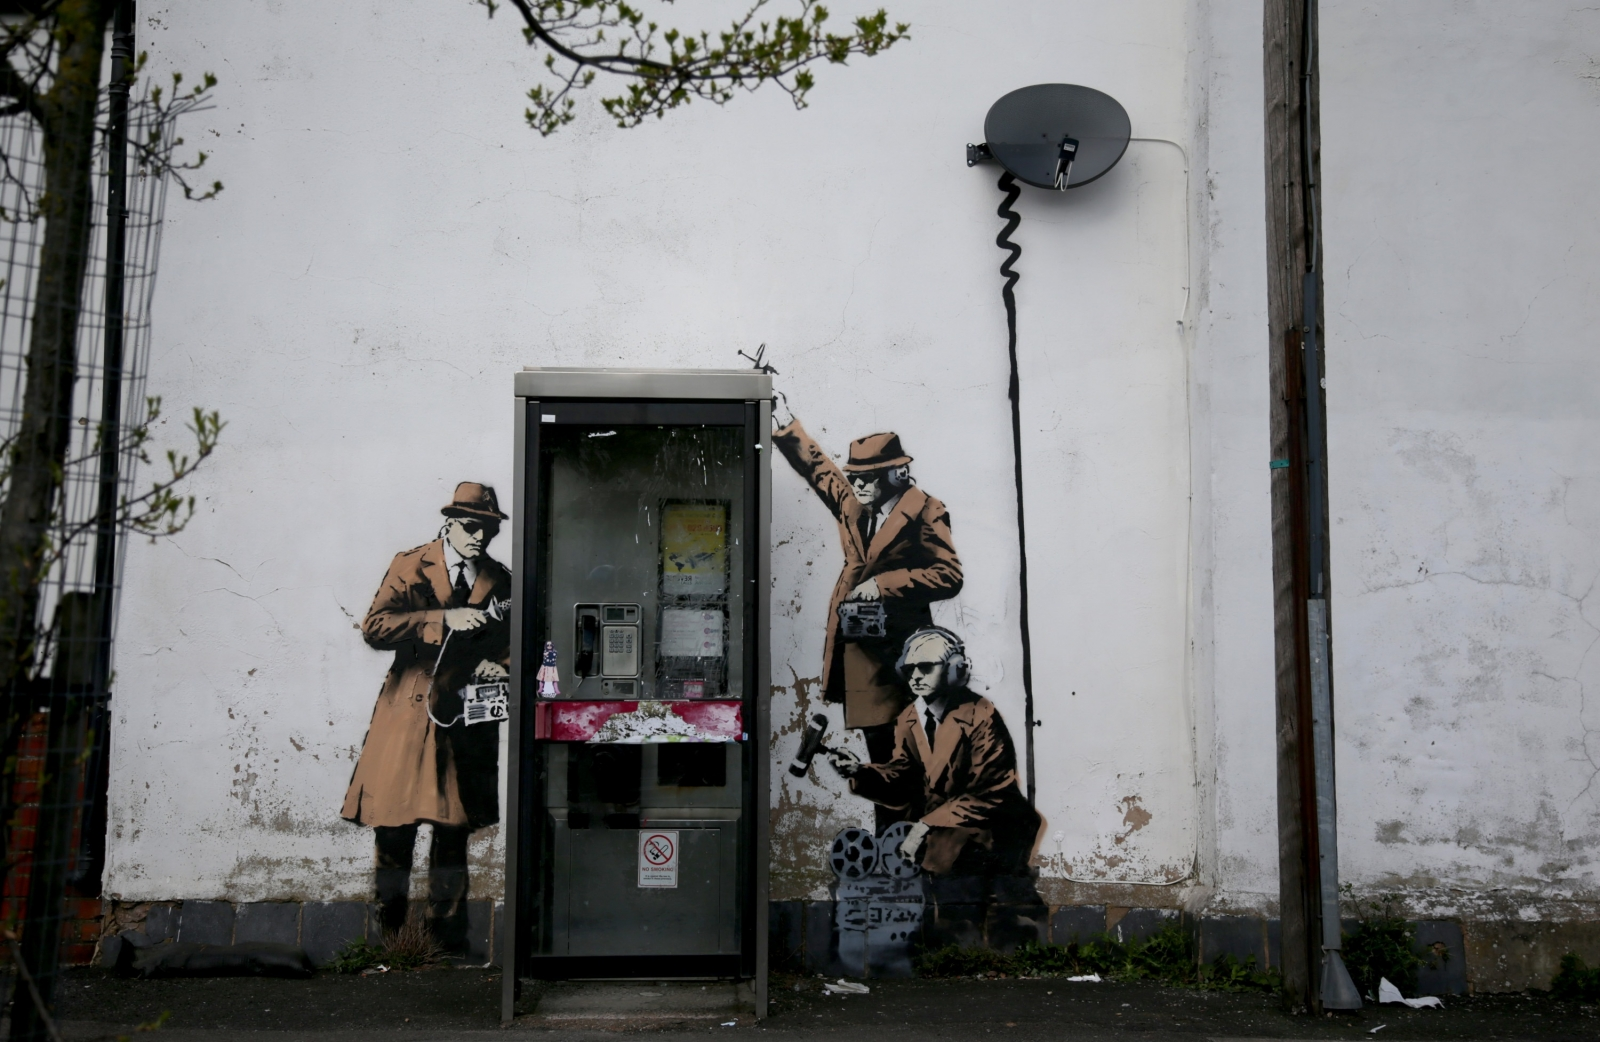 Banksy mural near GCHQ depicts spying